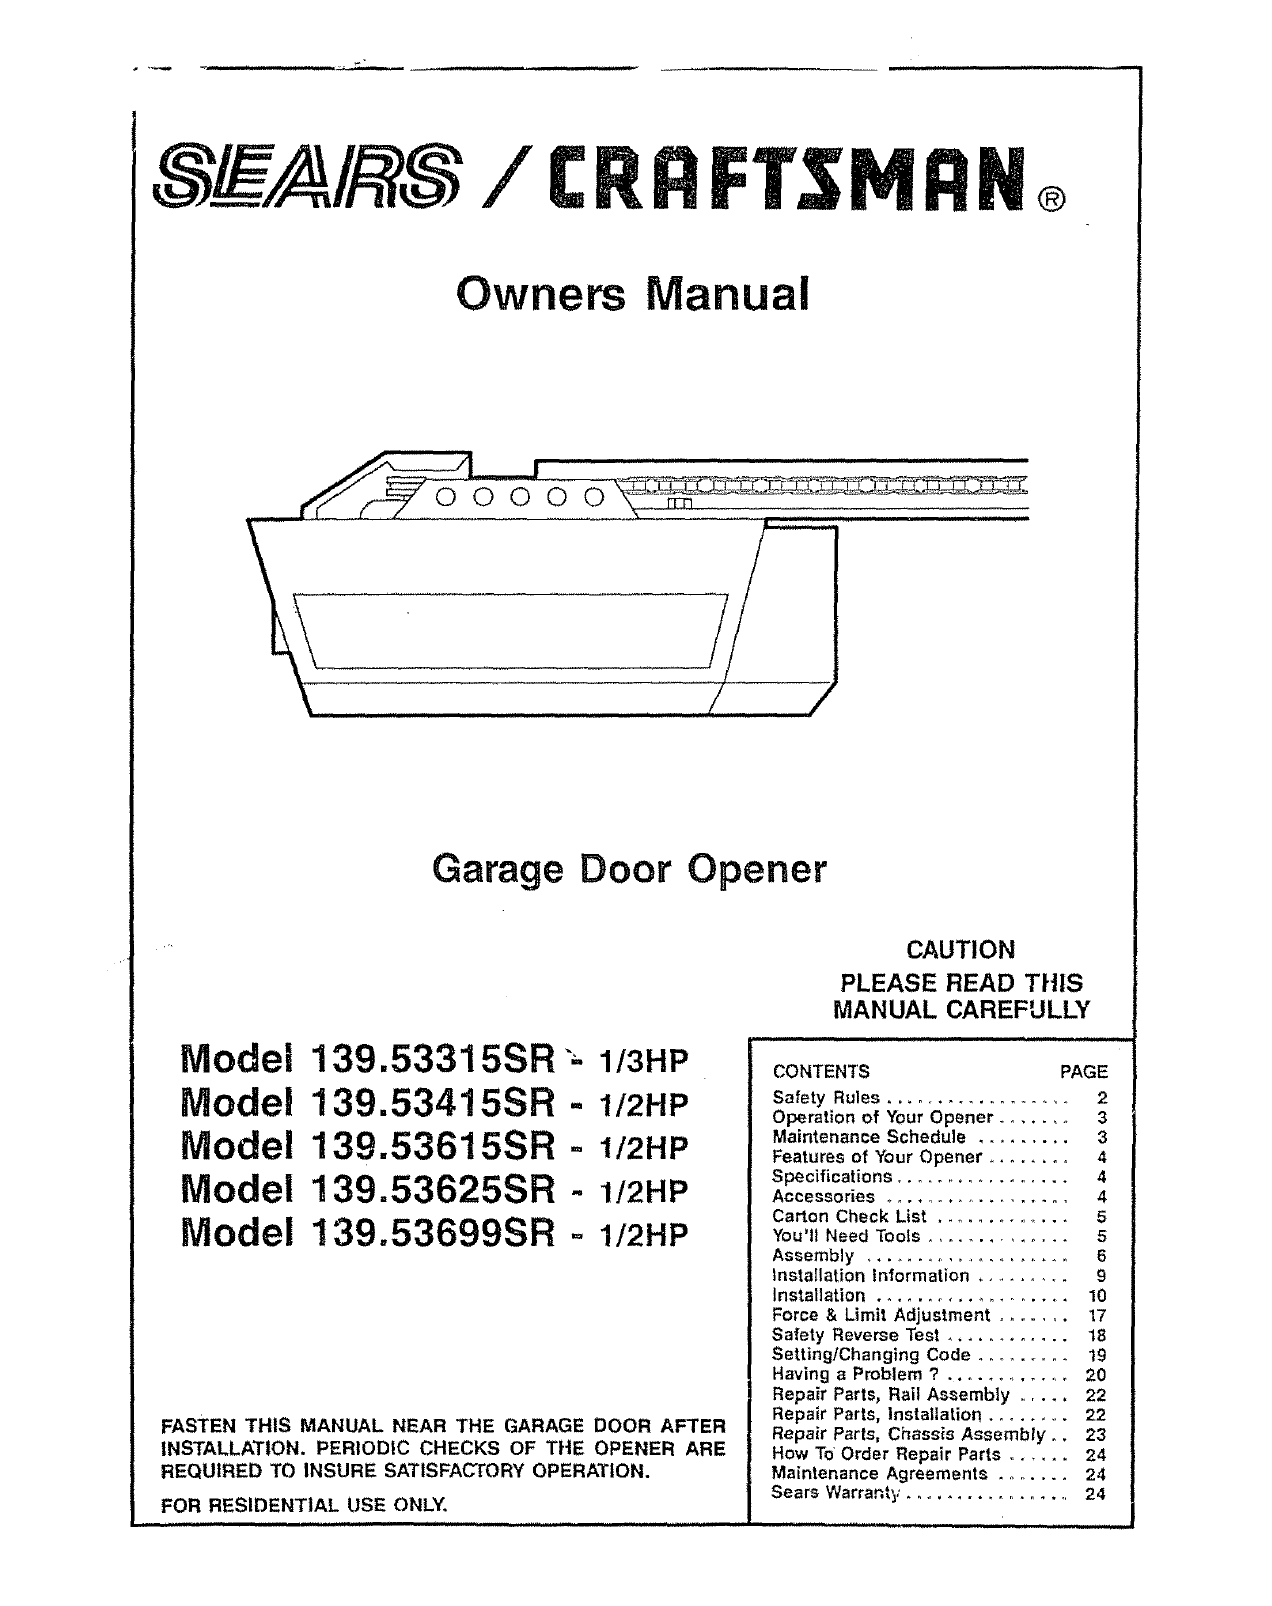 Unique Wiring Diagram Garage Door Motor Diagram Diagramsample Diagramtemplate Wiringdiagram Garage Door Motor Garage Door Opener Installation Garage Doors